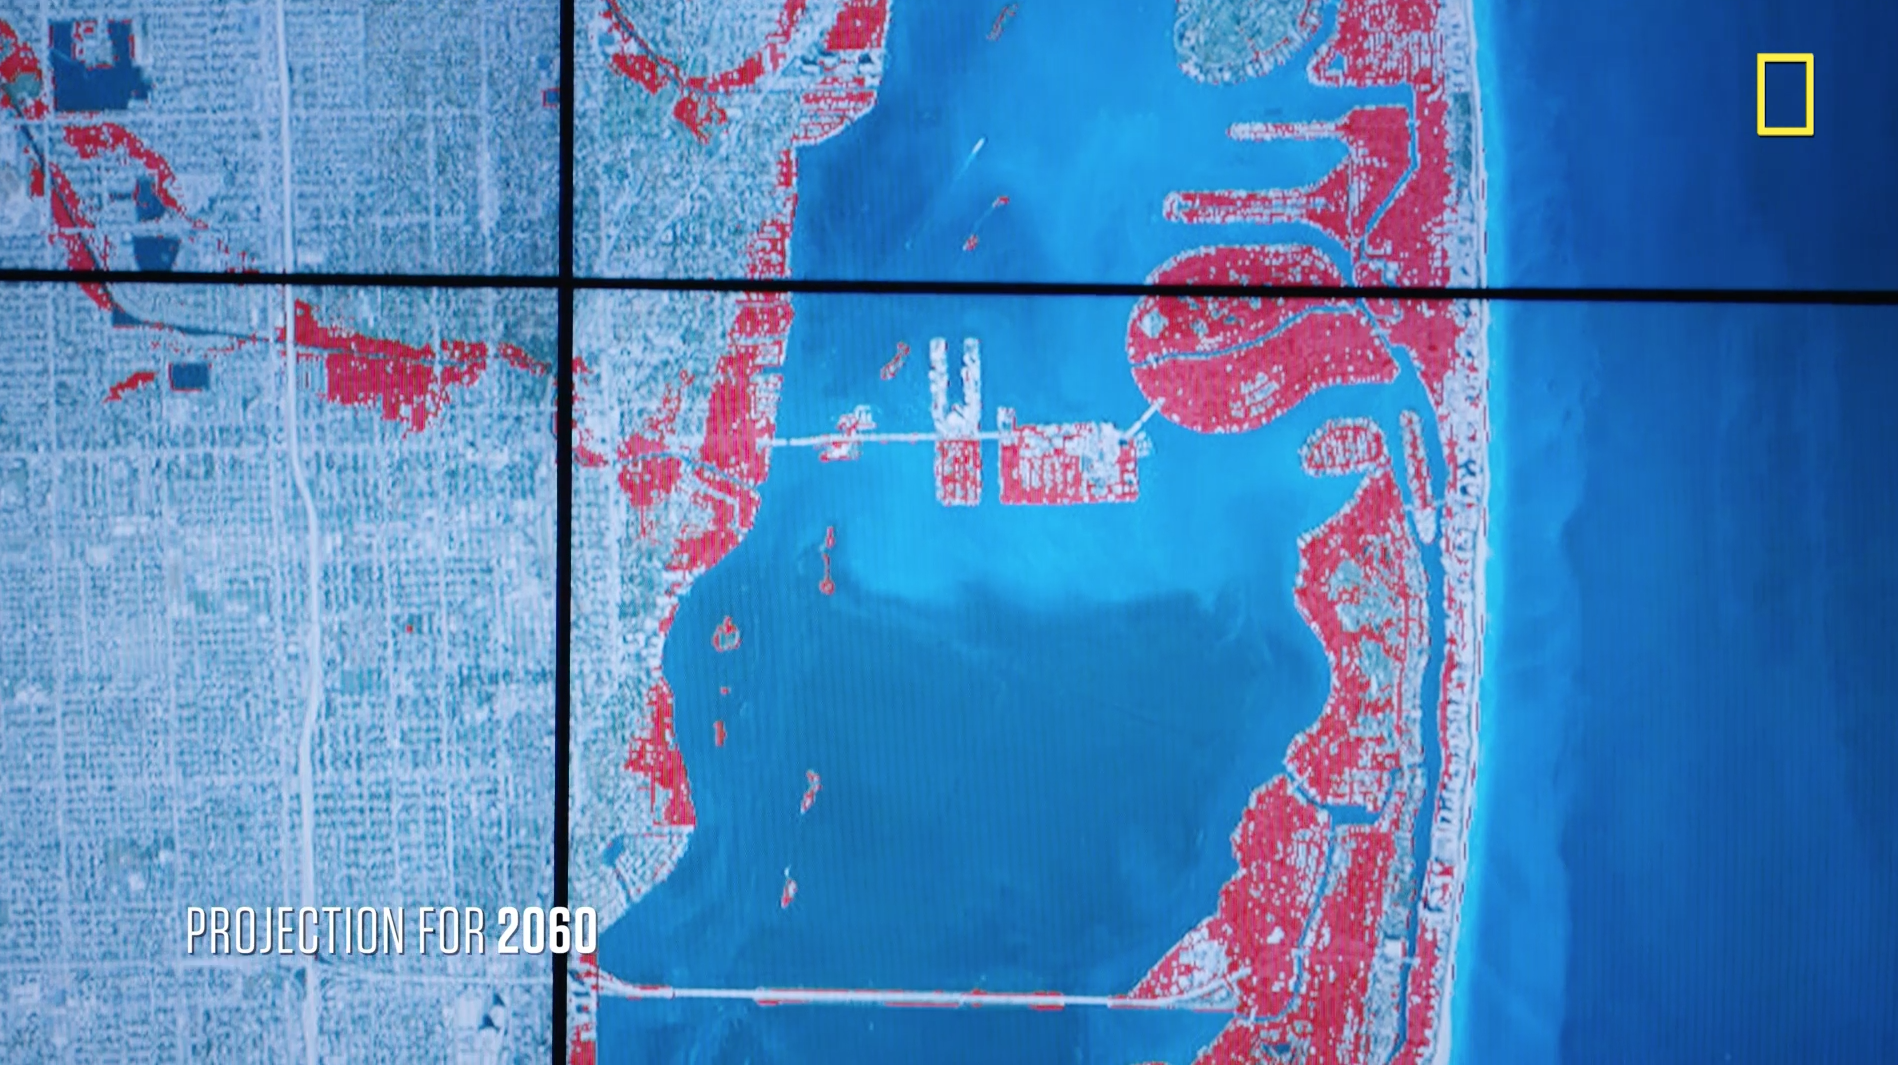 Maps Depict Projected Sea Level Rise In Miami Florida In 2030 2060 And 2100 Showing Impacts On The Dense Urban Dev Sea Level Rise Sea Level Coastal Cities